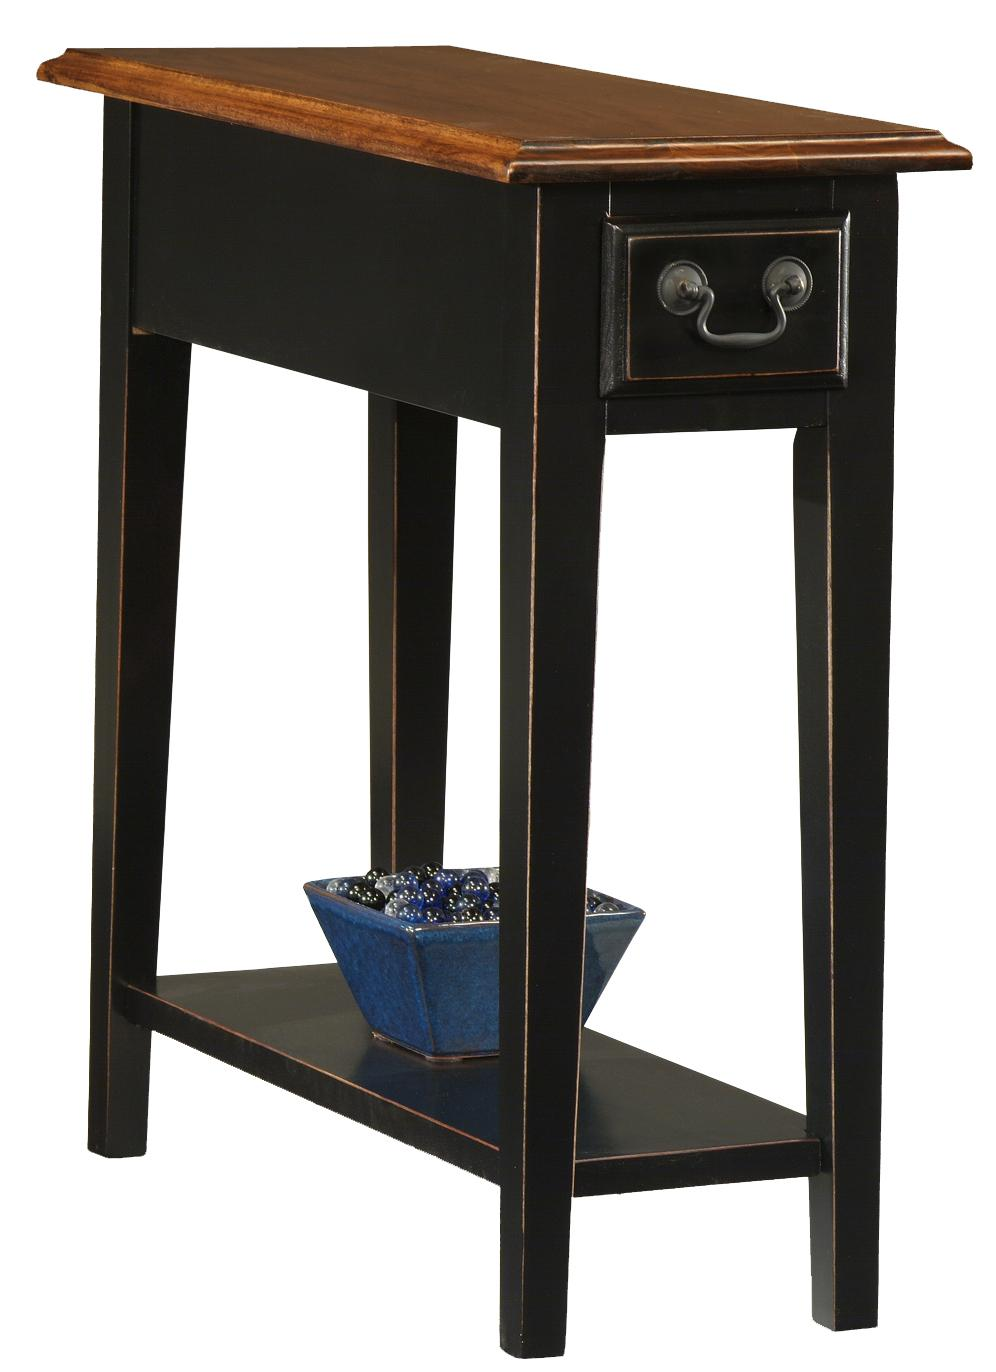 Favorite Finds Side Table by Leick Furniture at Lucas Furniture & Mattress